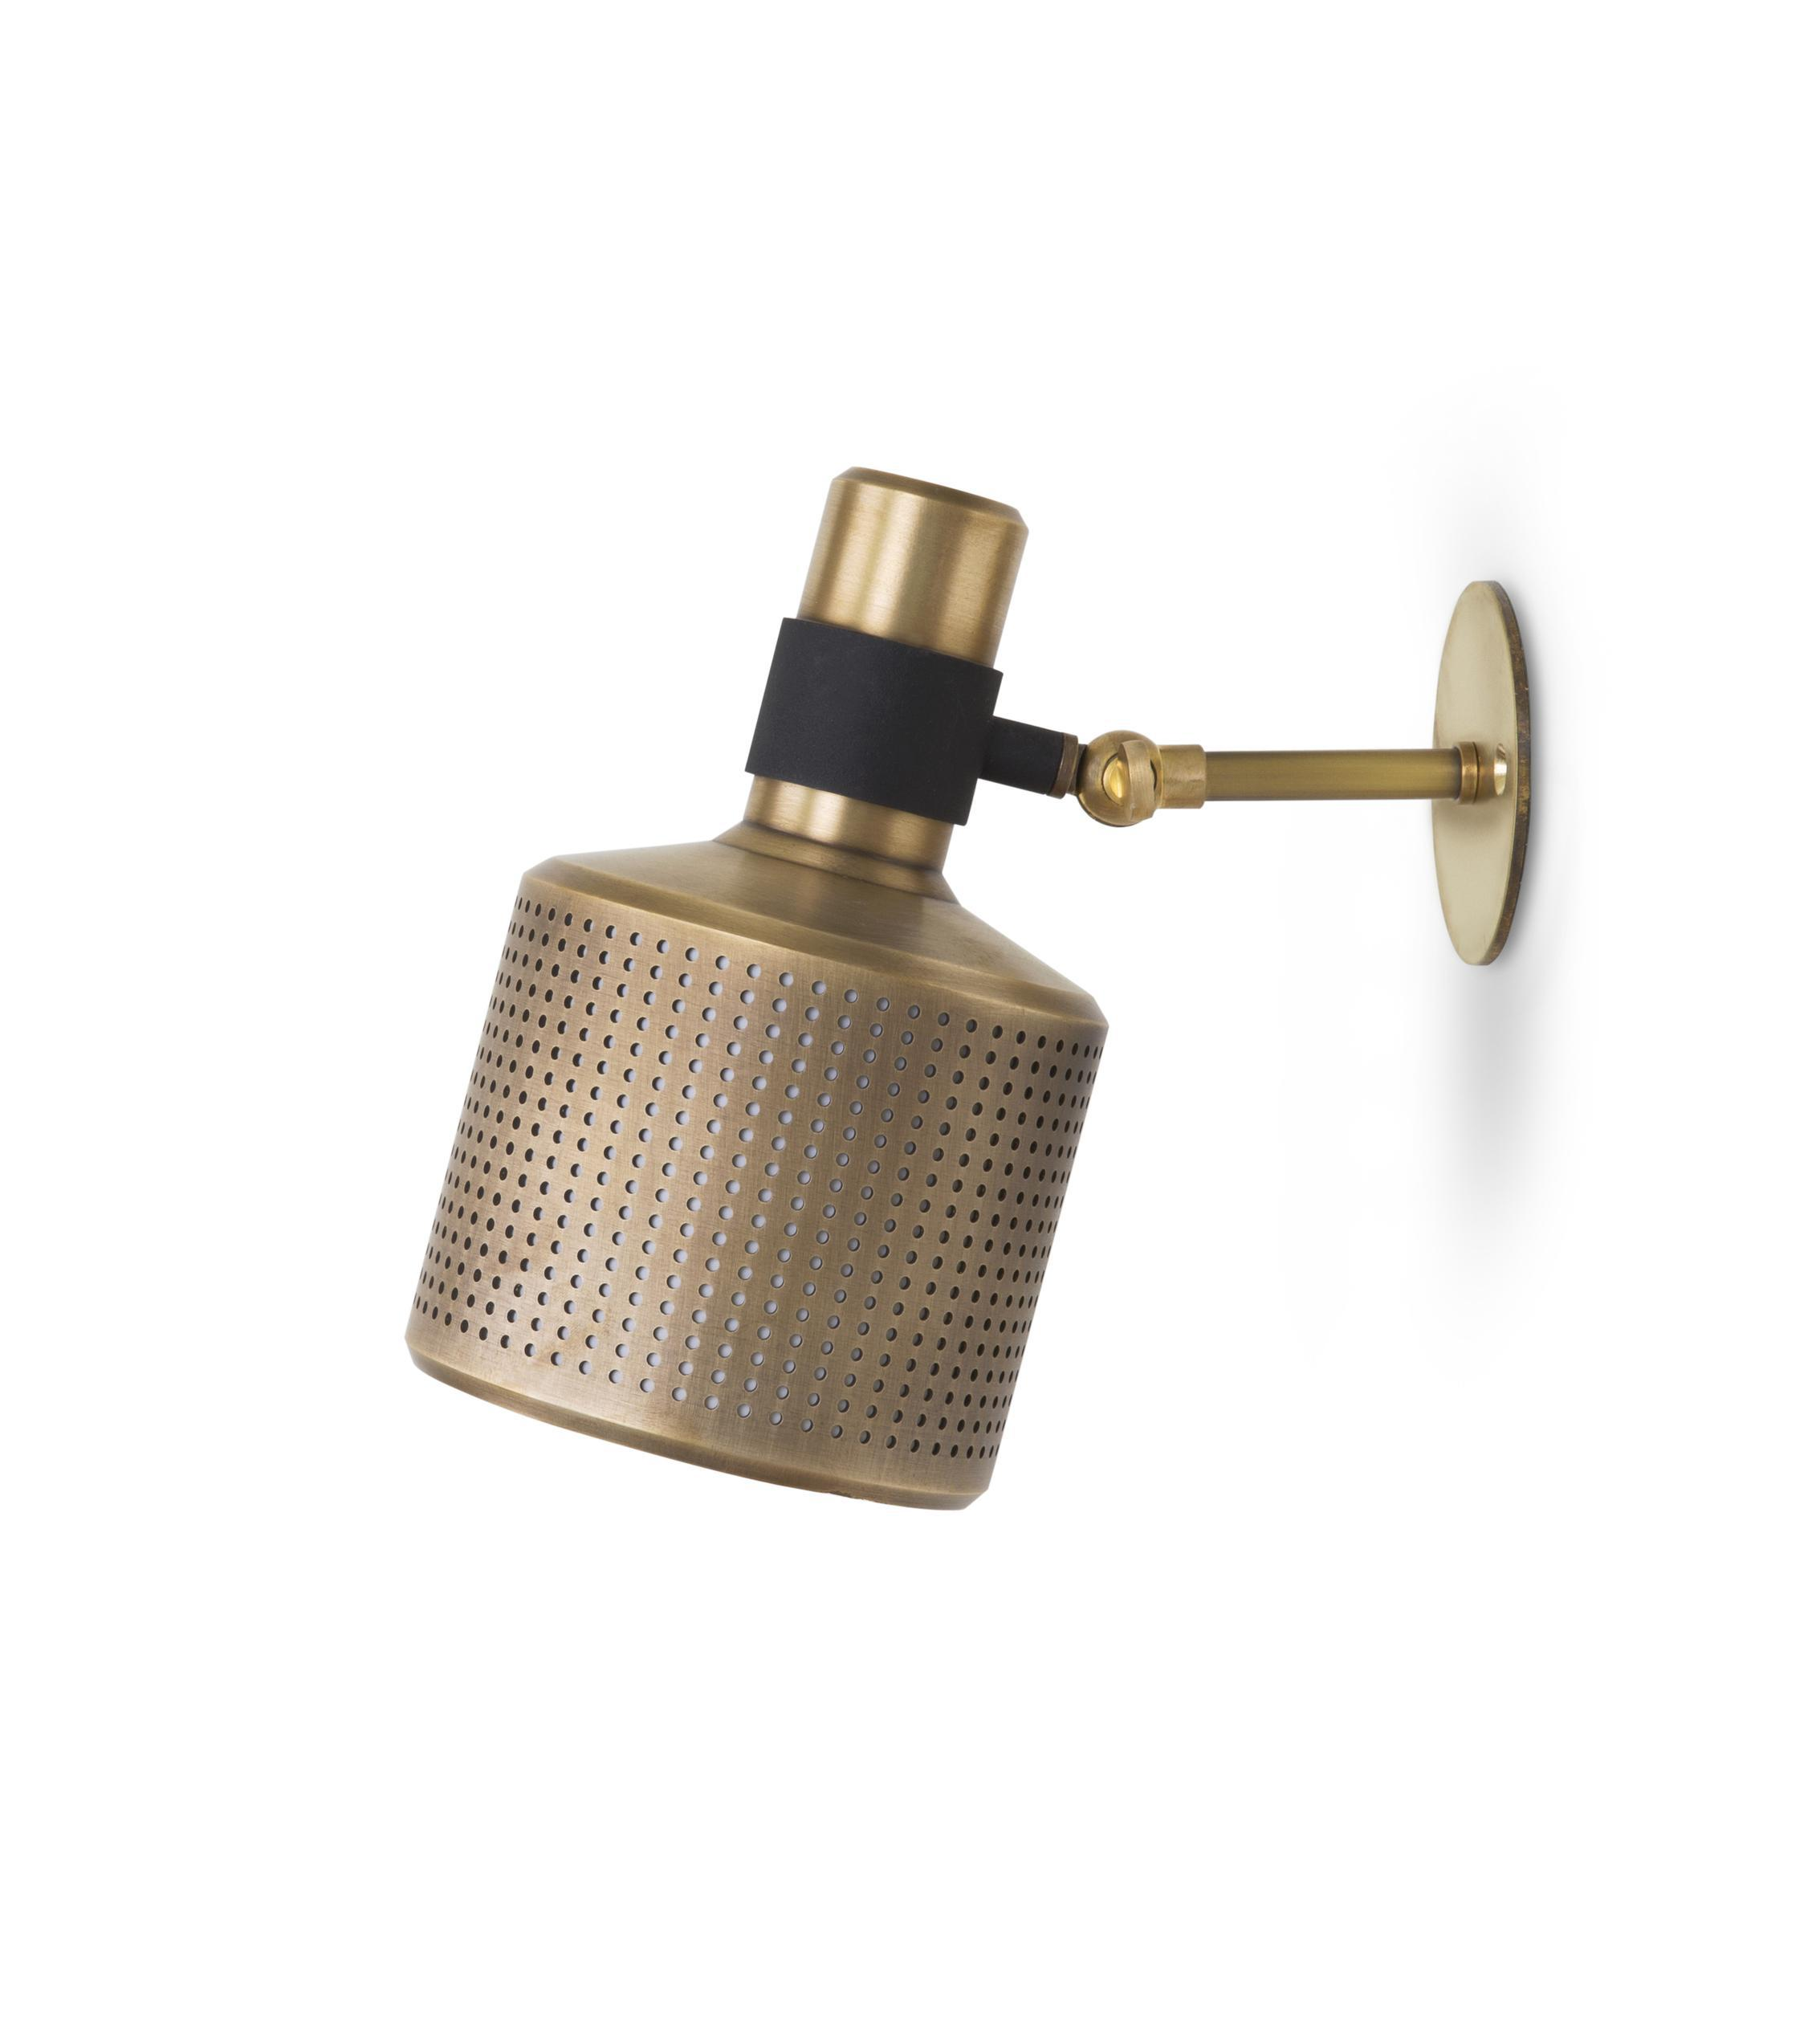 Riddle Wall Light - Single - Featuring an adjustable, perforated machined brass shade with a fabric insert, the Riddle Single Wall Light emits a soft light that can be directed to wash the wall or positioned away to highlight the desired area. Available with a deep back plate if required.   | Matter of Stuff